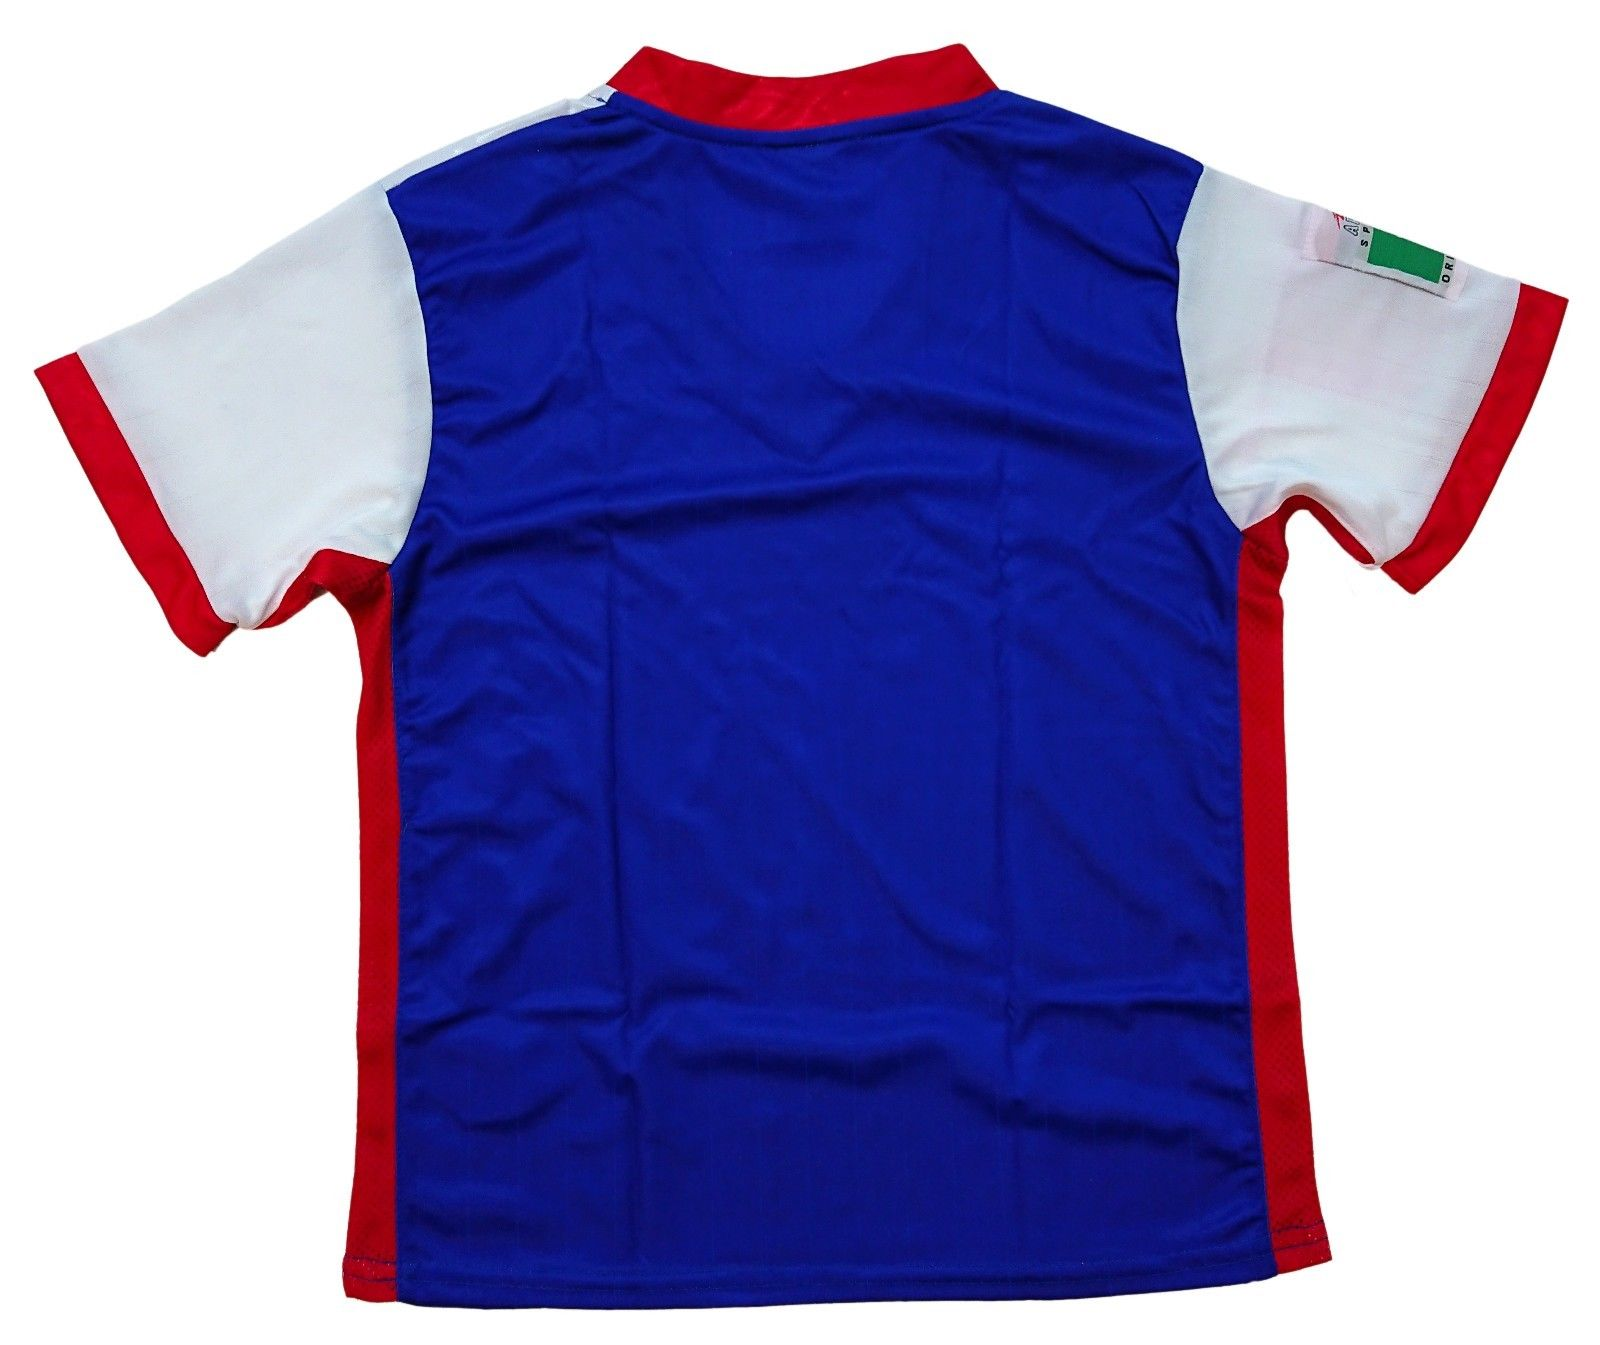 a35c763ea ... France Home and Away Arza Youth and Adult Soccer Uniform ...